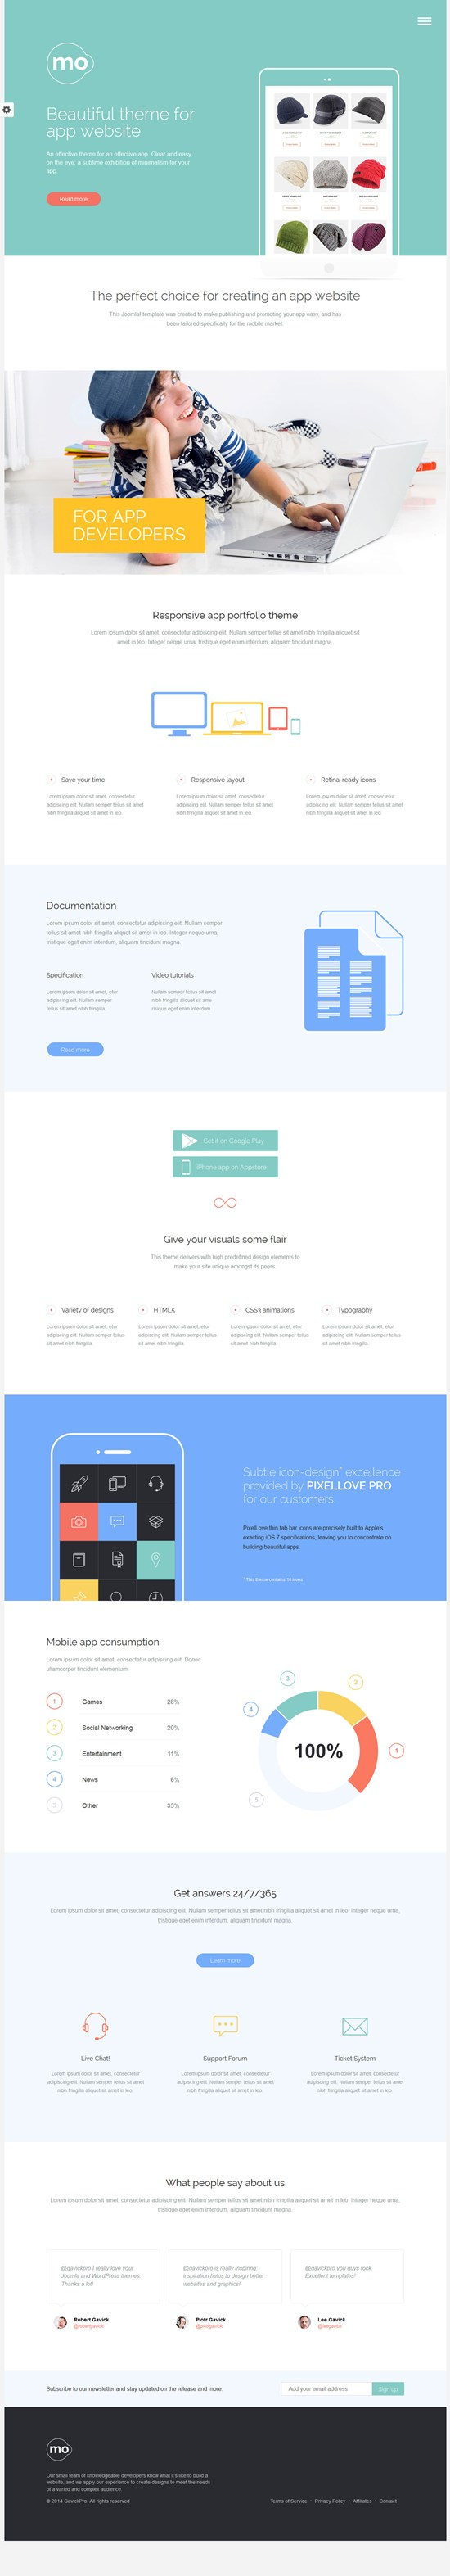 MO - Mobile Apps and Products WordPress Theme